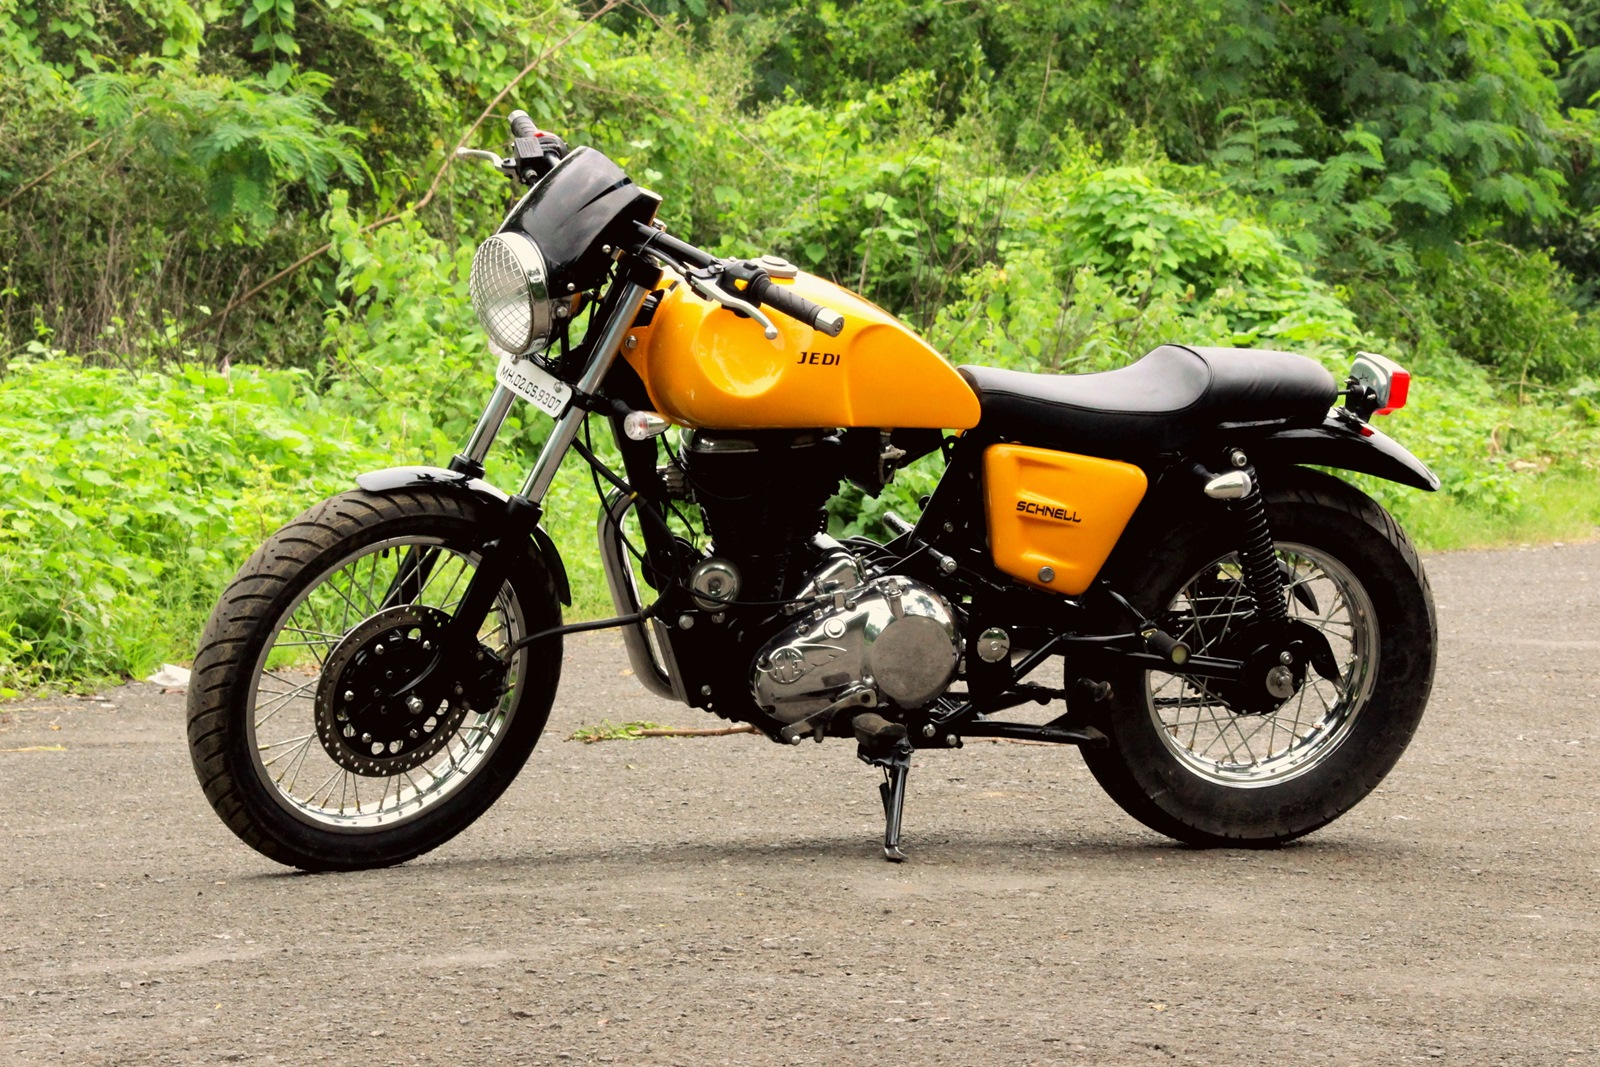 Electra-to-clean-Cafe-Racer-Jedi-Customs-CC-com-wallpaper-wp4806174